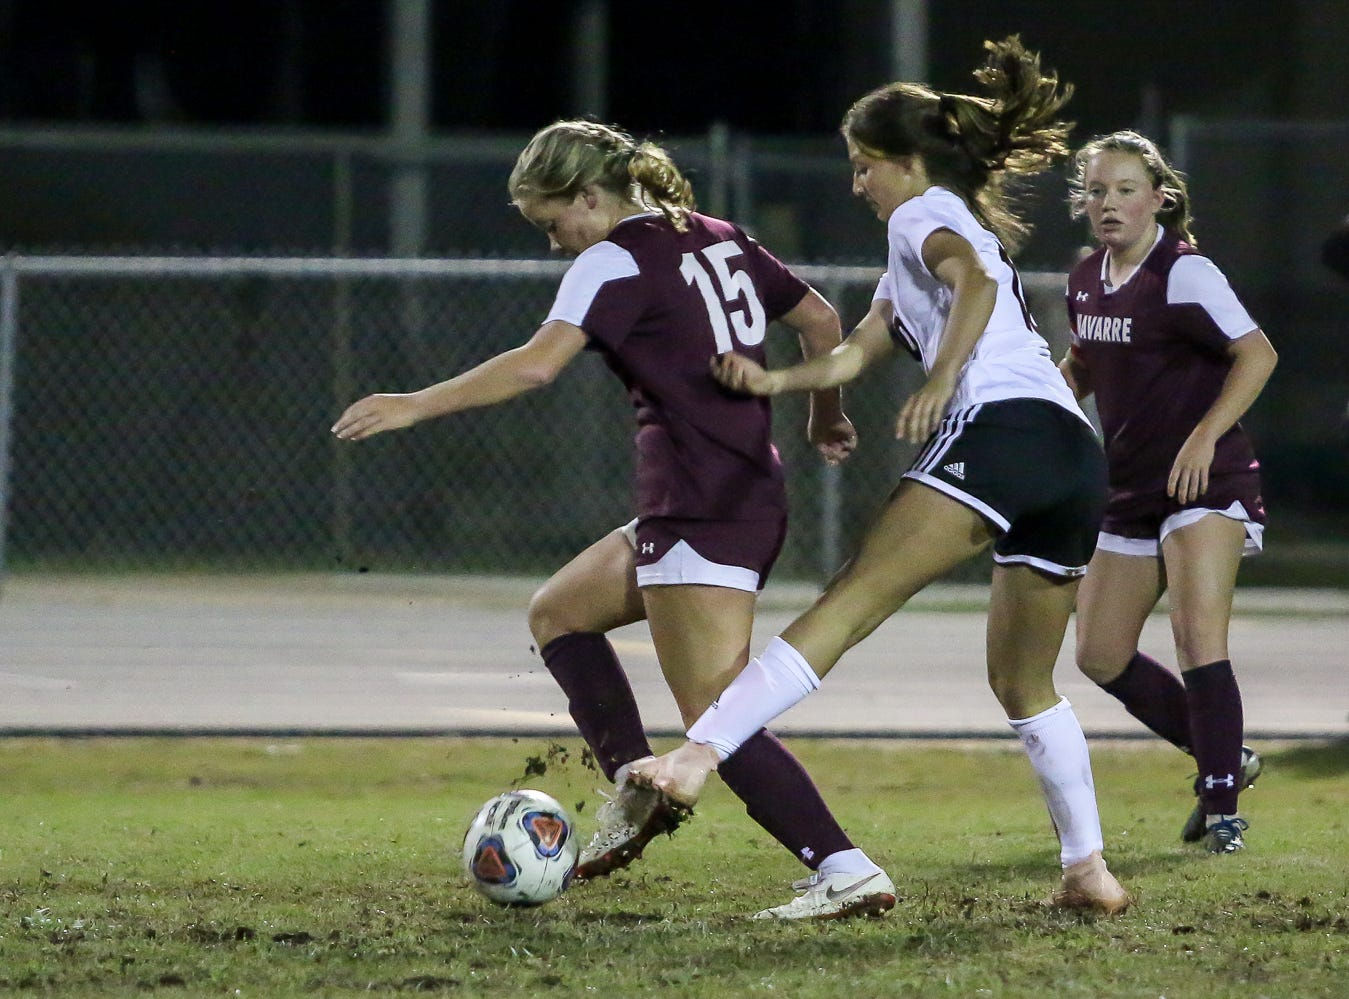 Navarre's Autumn Slaybaugh (15) races past Niceville's Ashlynn Fernandez (10) in a District 1-4A showdown of unbeaten teams at Navarre High School on Tuesday, December 4, 2018. The game ended in a 1-1 tie.